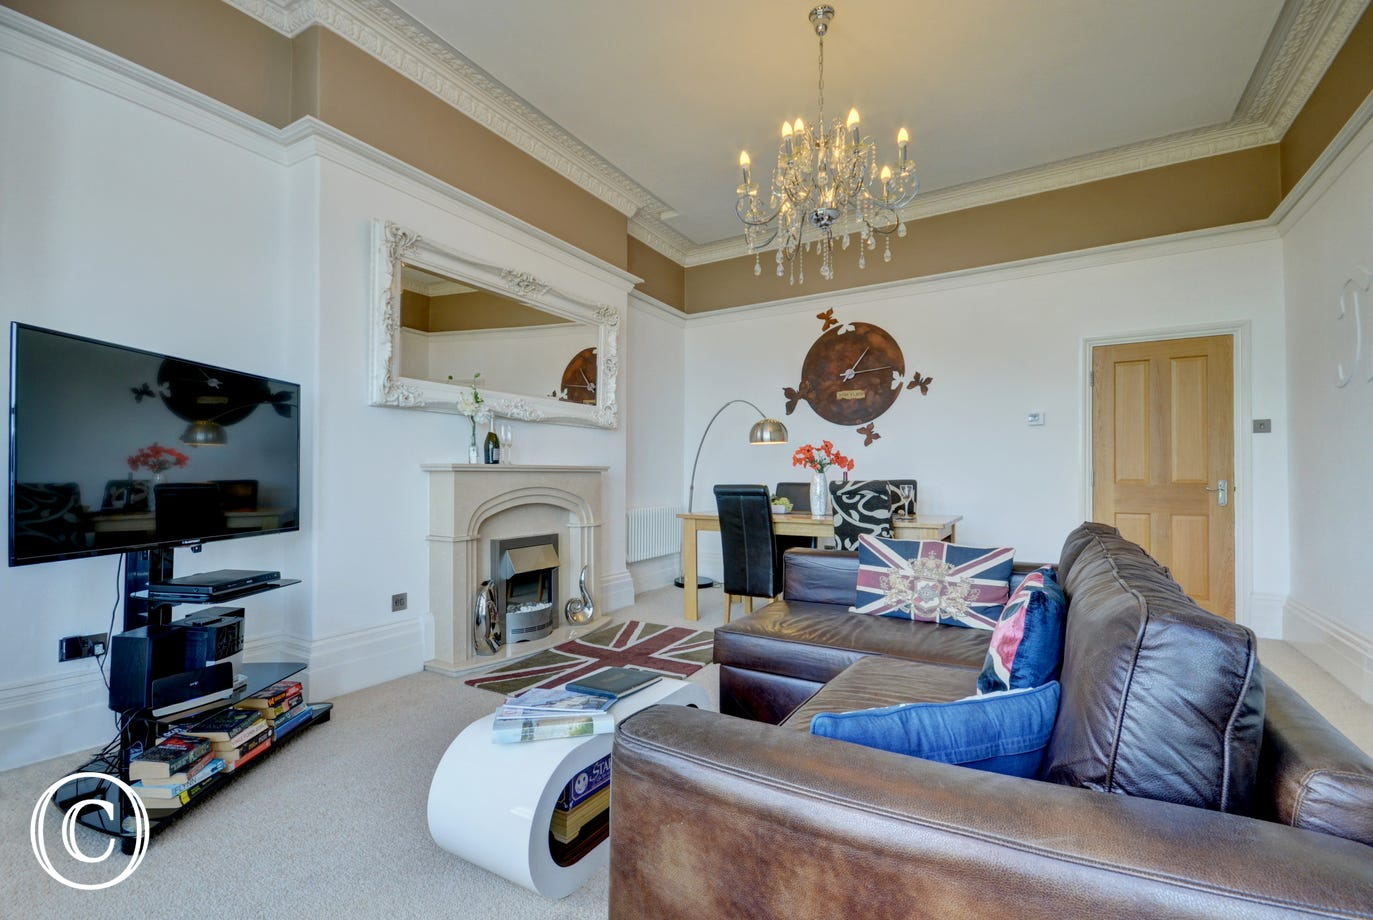 Comfortable seating and large TV in the lovely bright living space